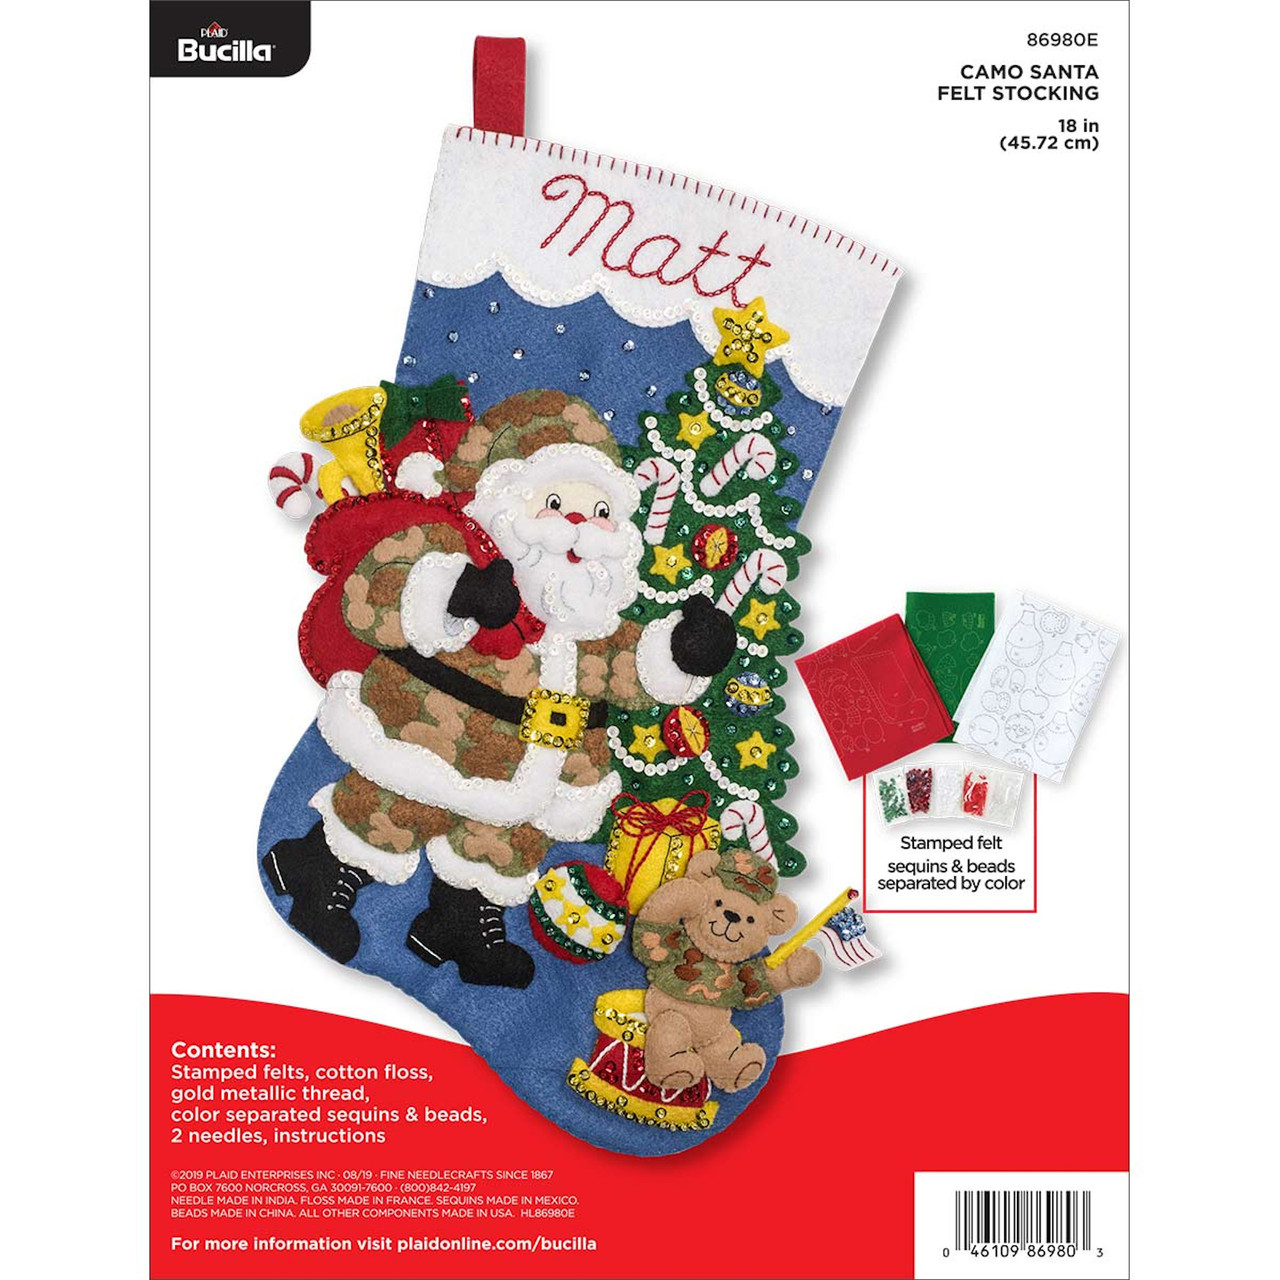 Plaid / Bucilla -  Camo Santa Stocking